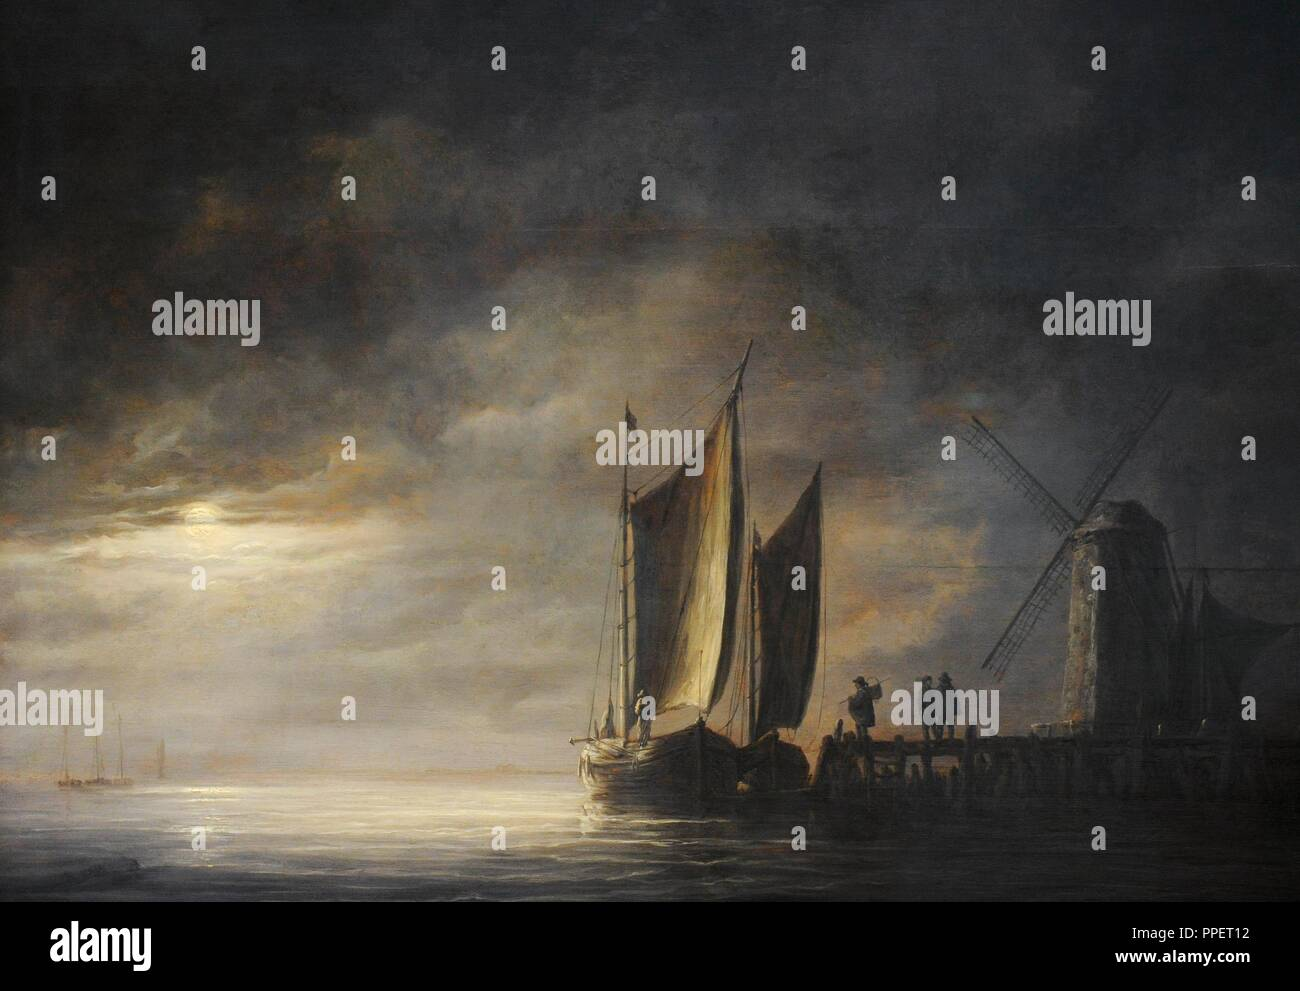 Albert Jacob Cuyp (1620-1691). Dutch painter. Dordrecht Harbour in Moonlight, ca.1645. Wallraf-Richartz Museum. Cologne. Germany. - Stock Image